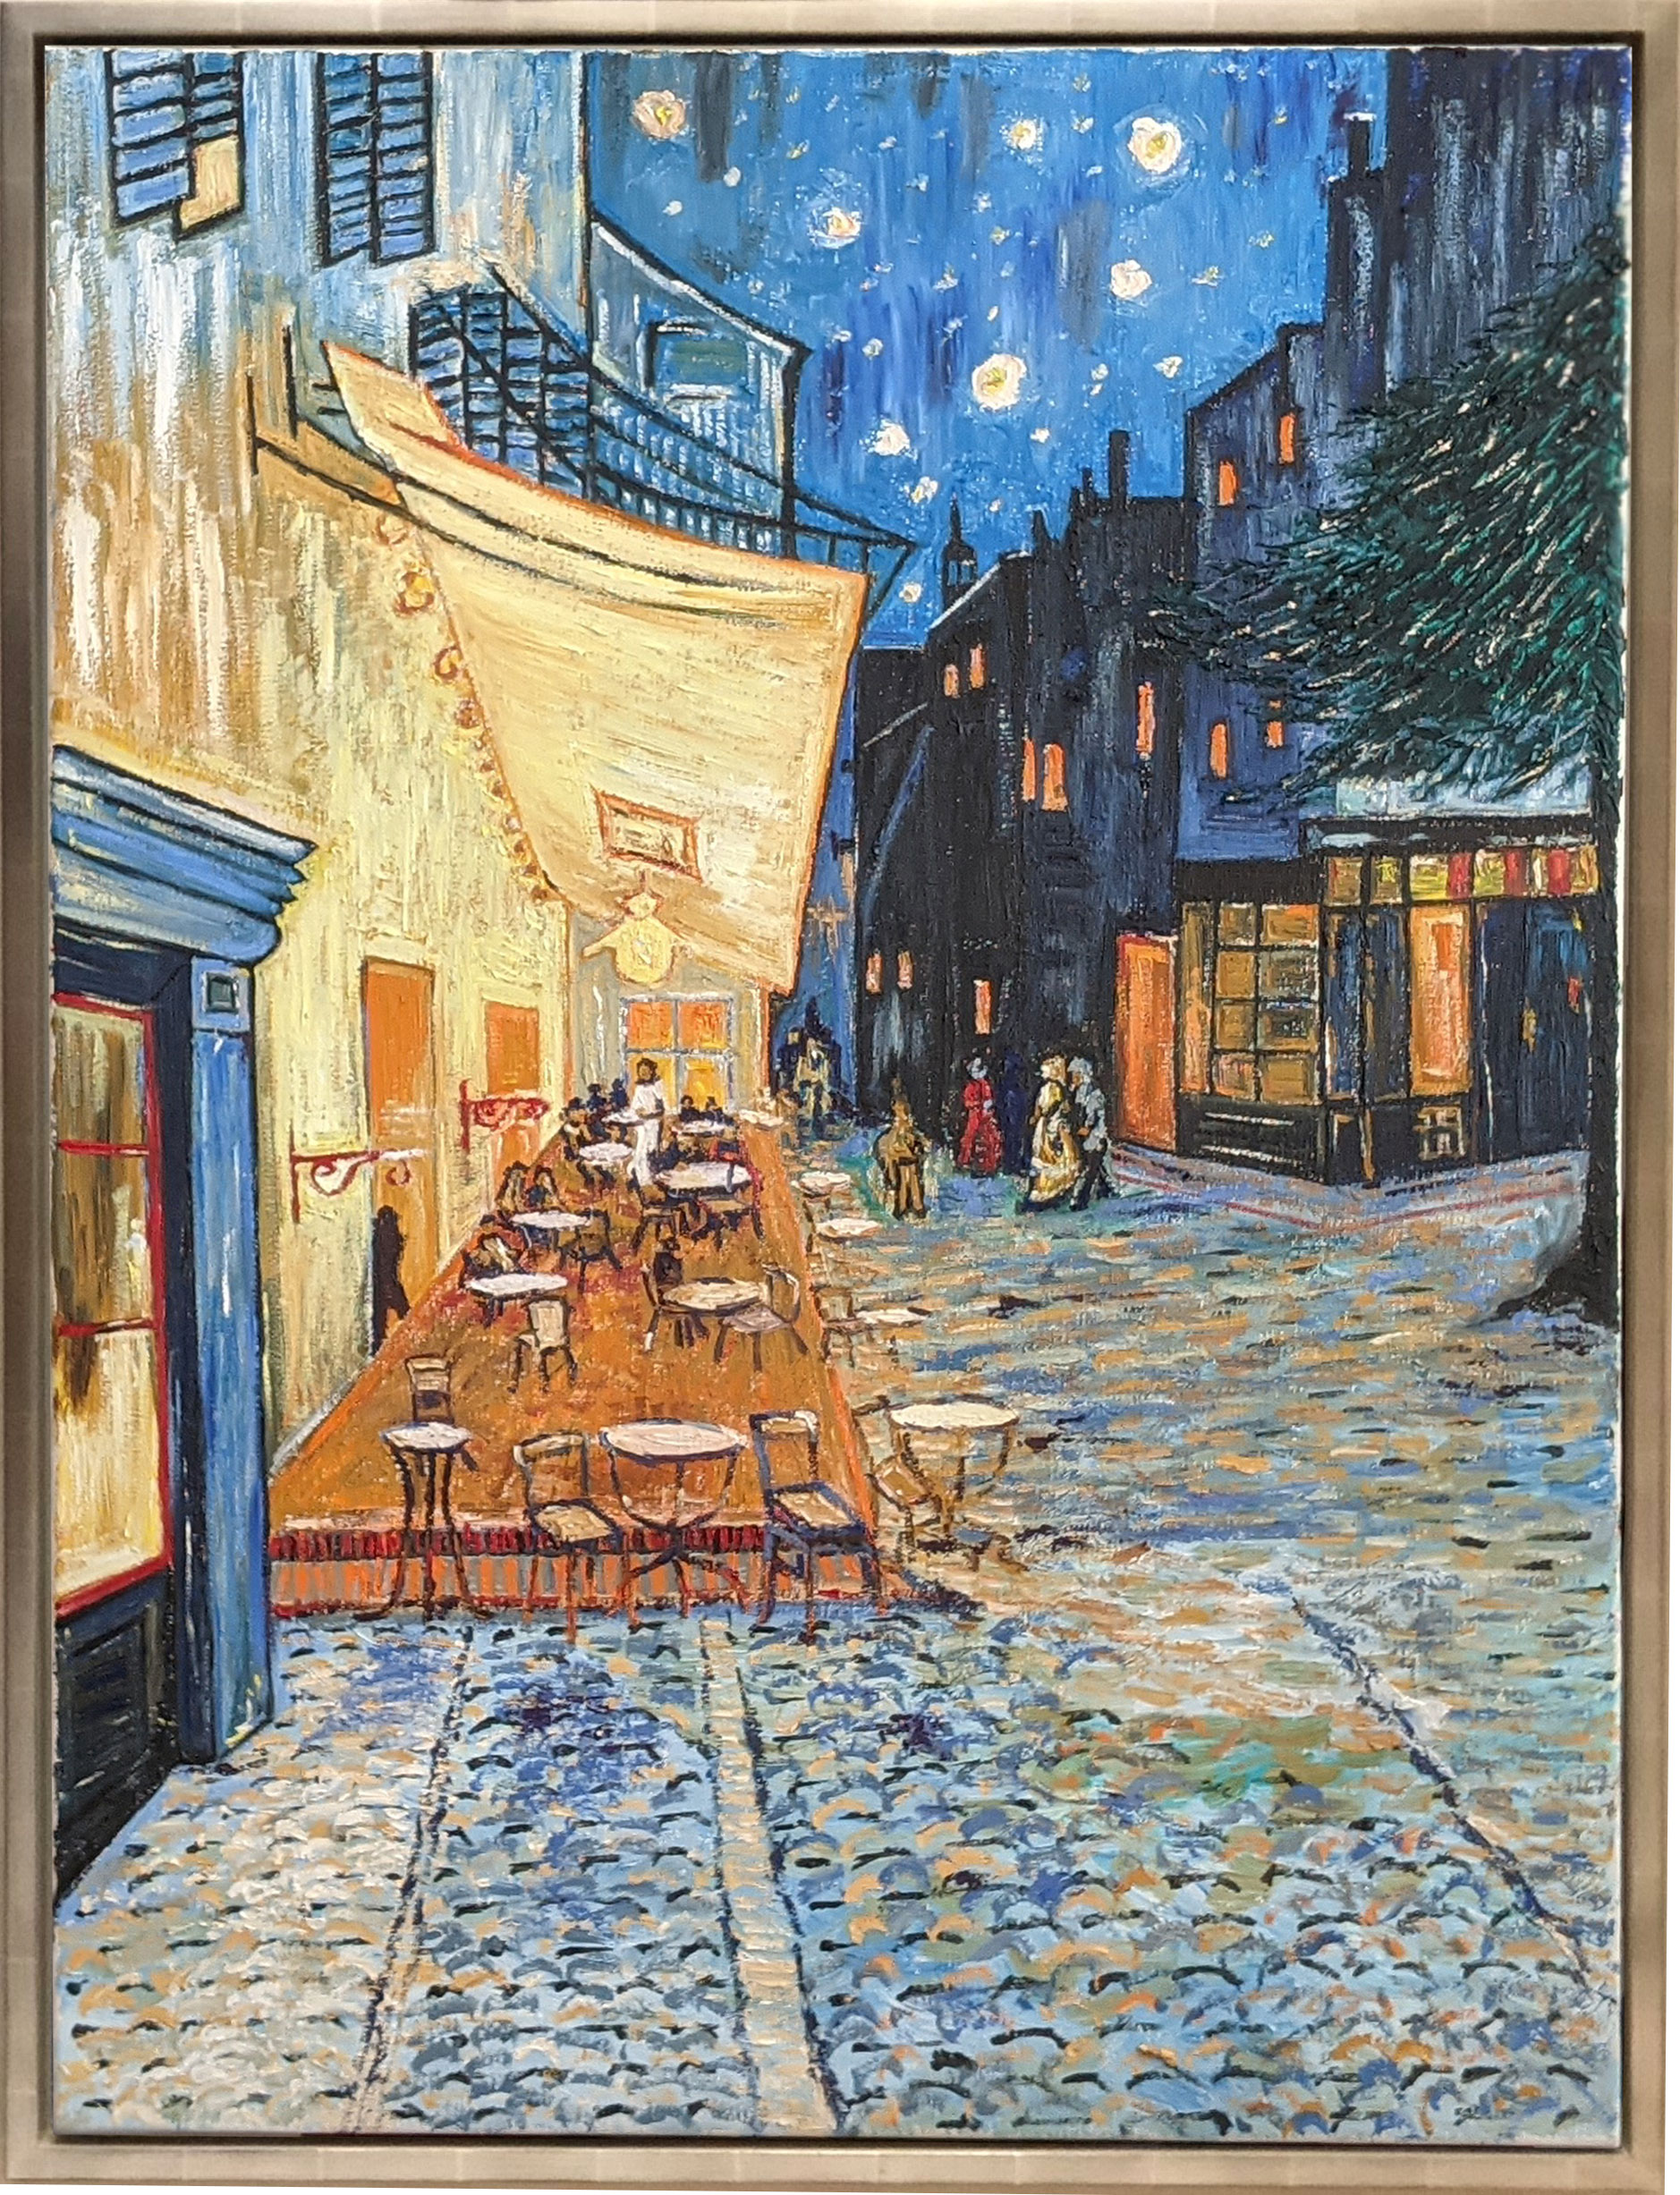 Café Terrace at Night reproduction by Fan Stanbrough